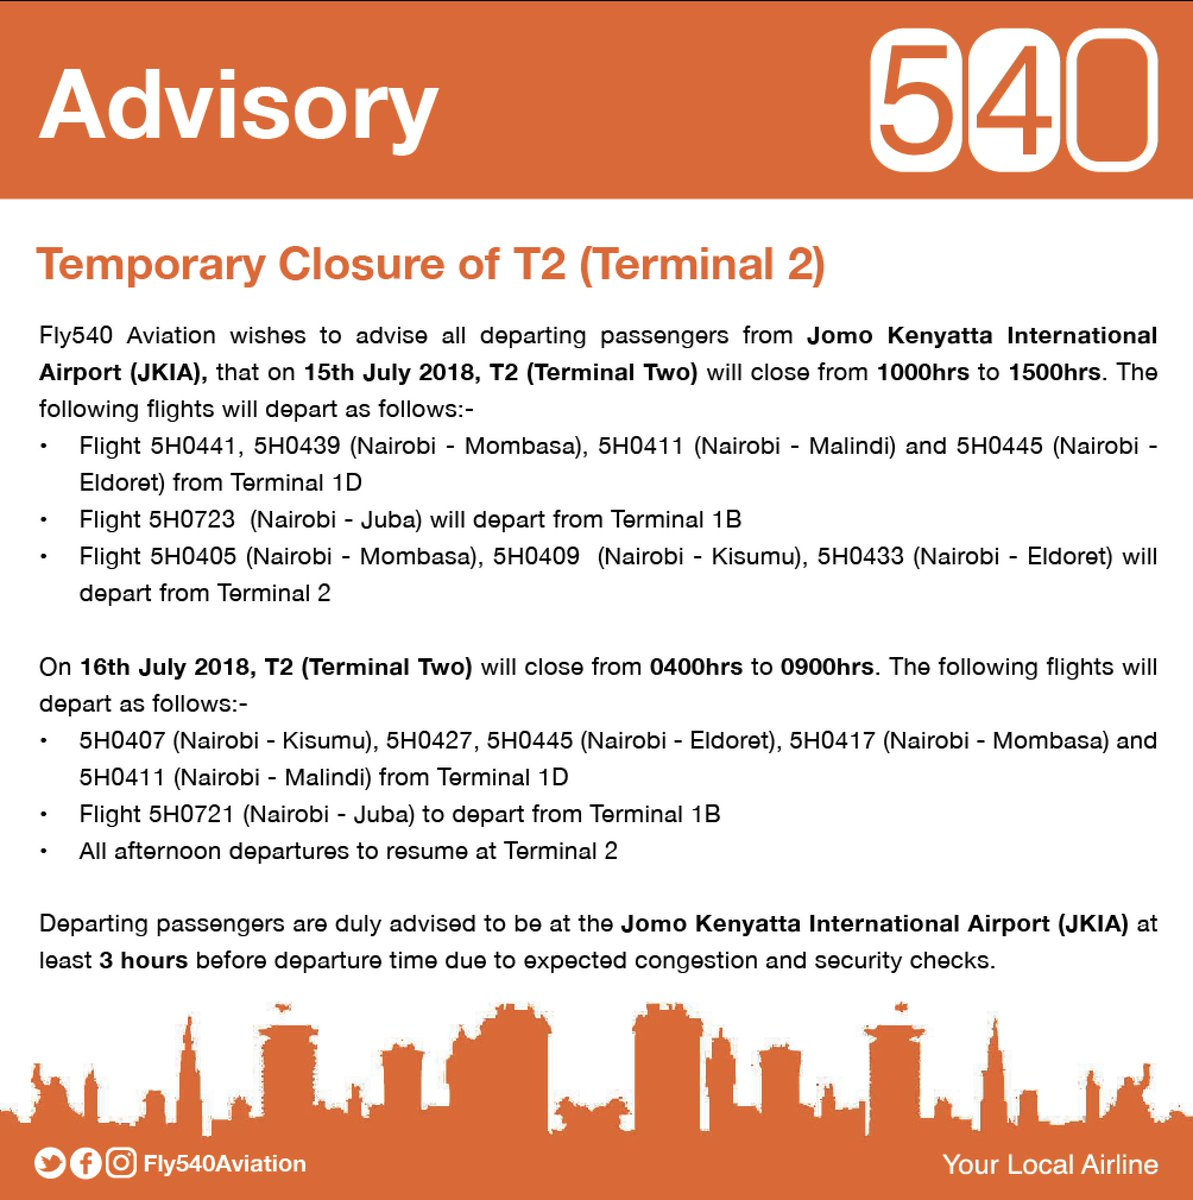 Change of Terminal for 15th and 16th July 2018<br>http://pic.twitter.com/gkznDTbxD8